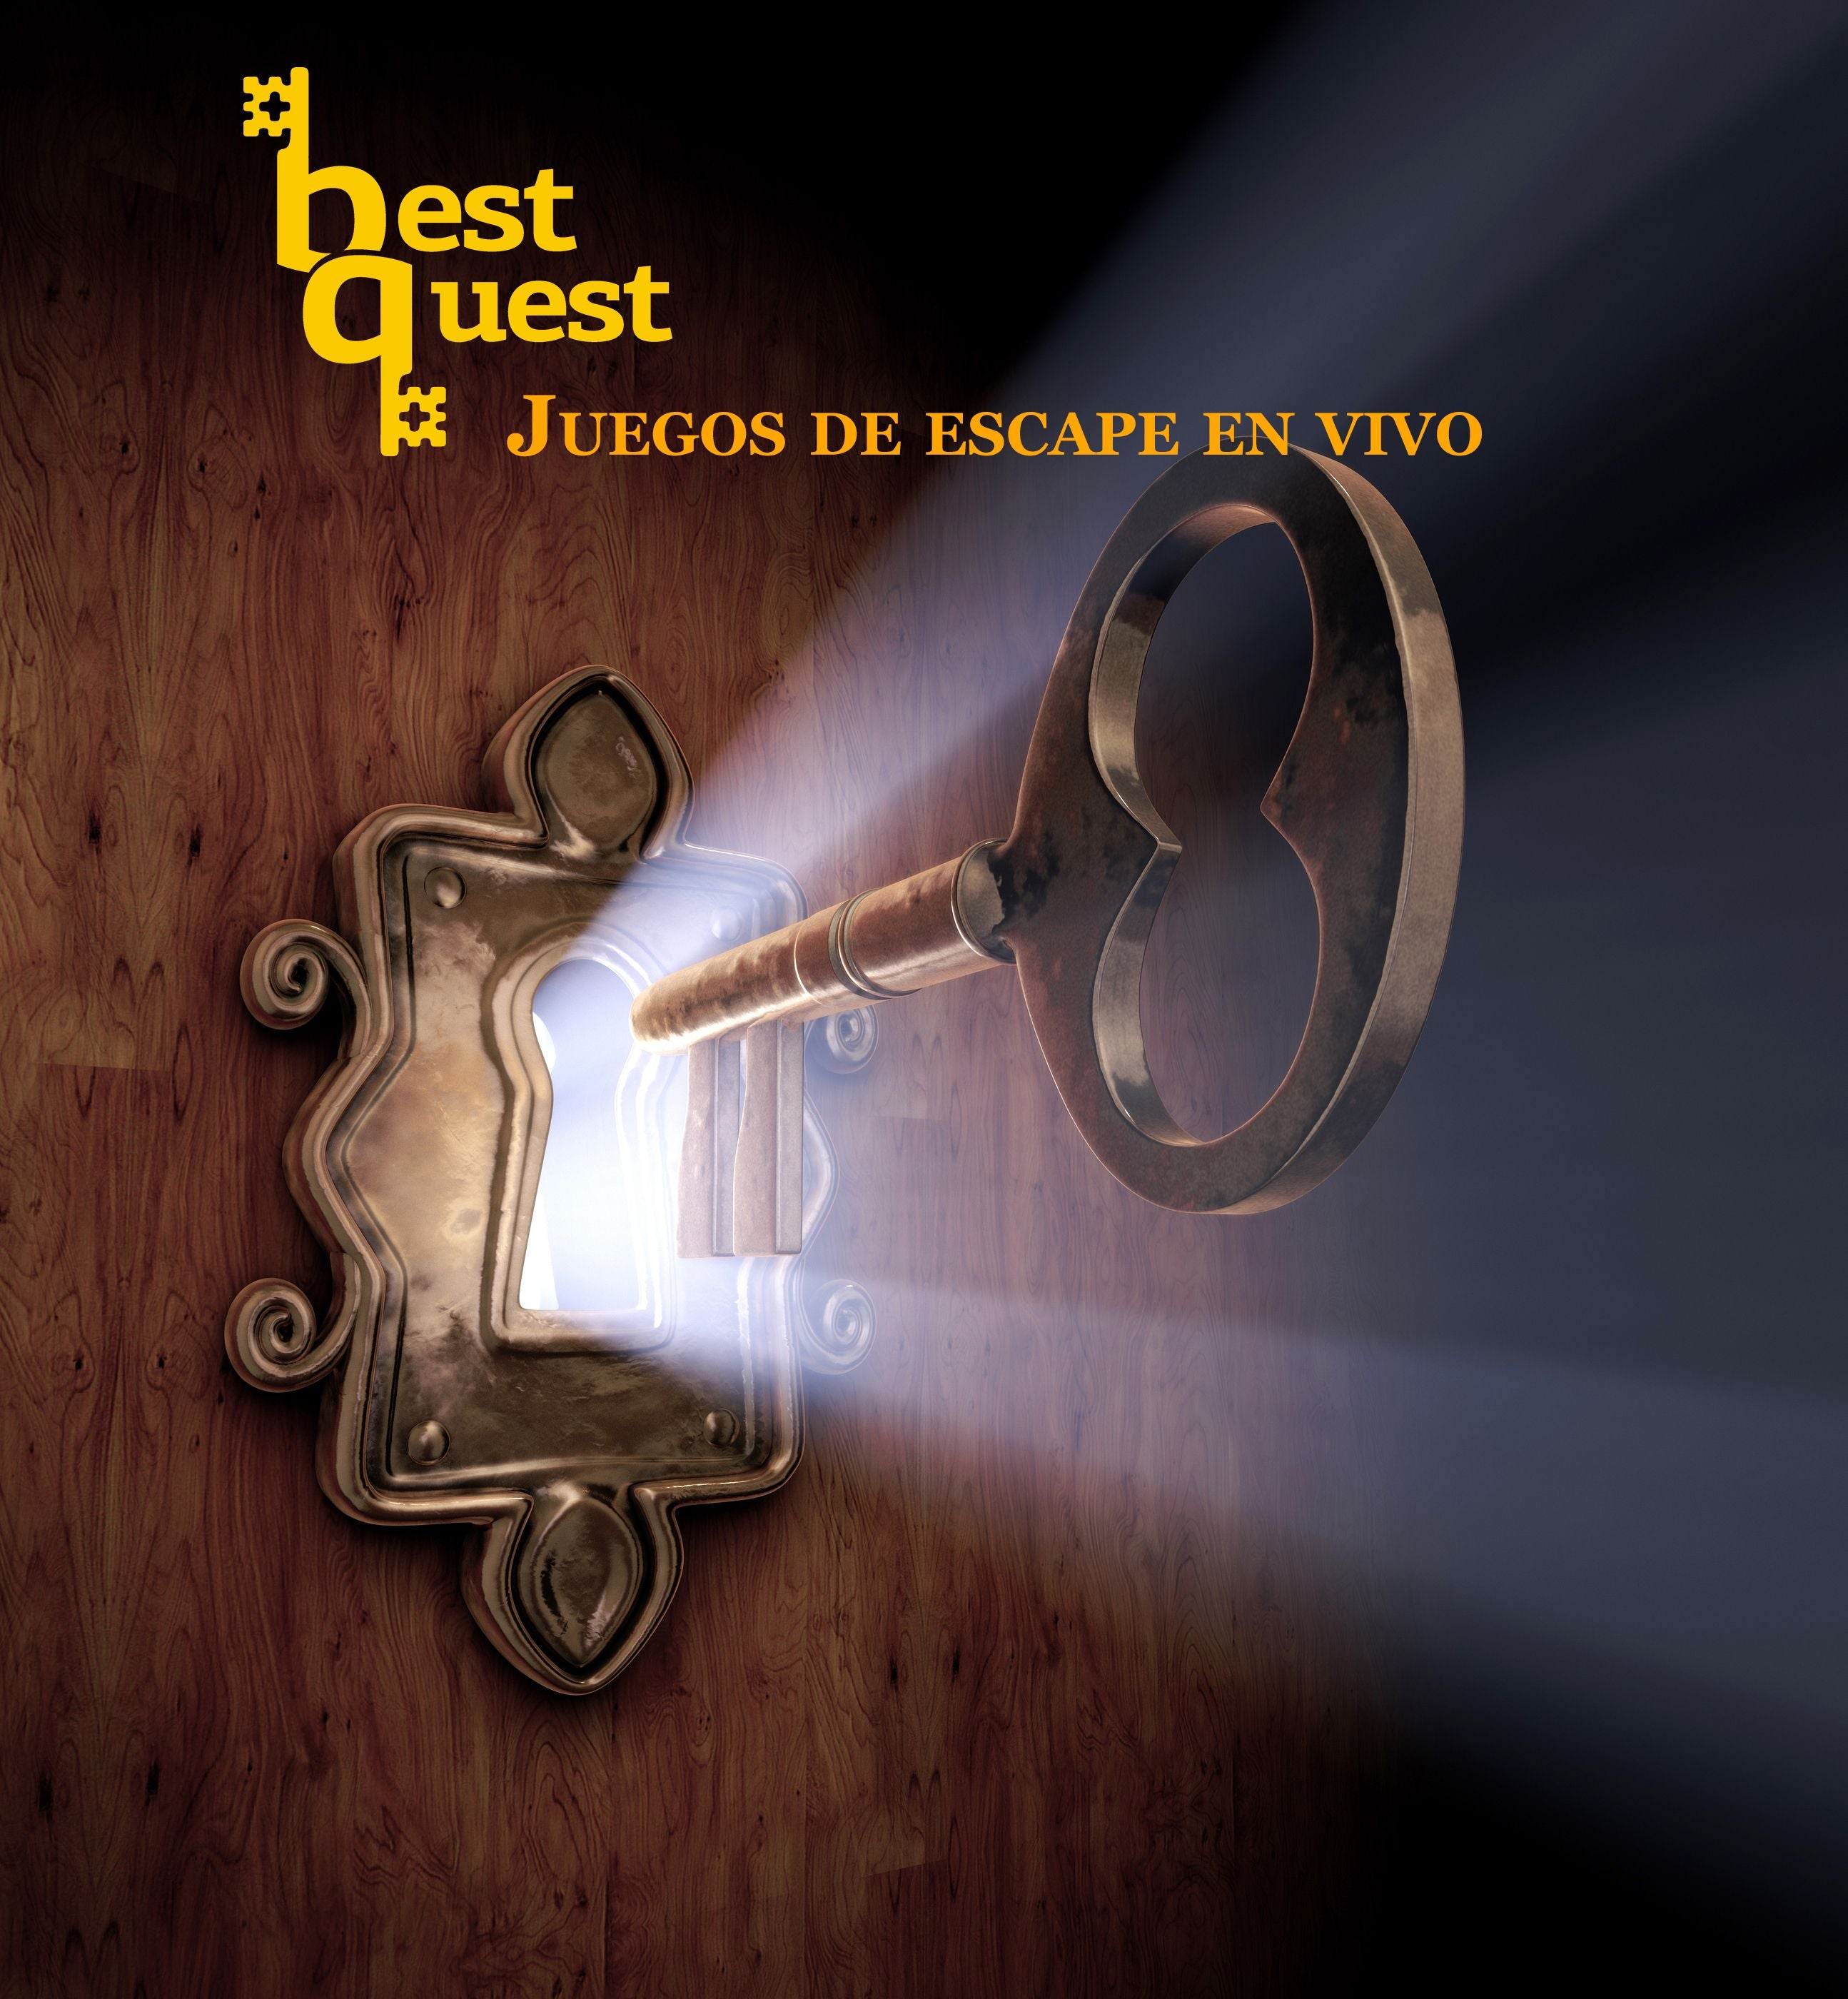 Arma en Best Quest Room Escape (juego de escape en vivo)